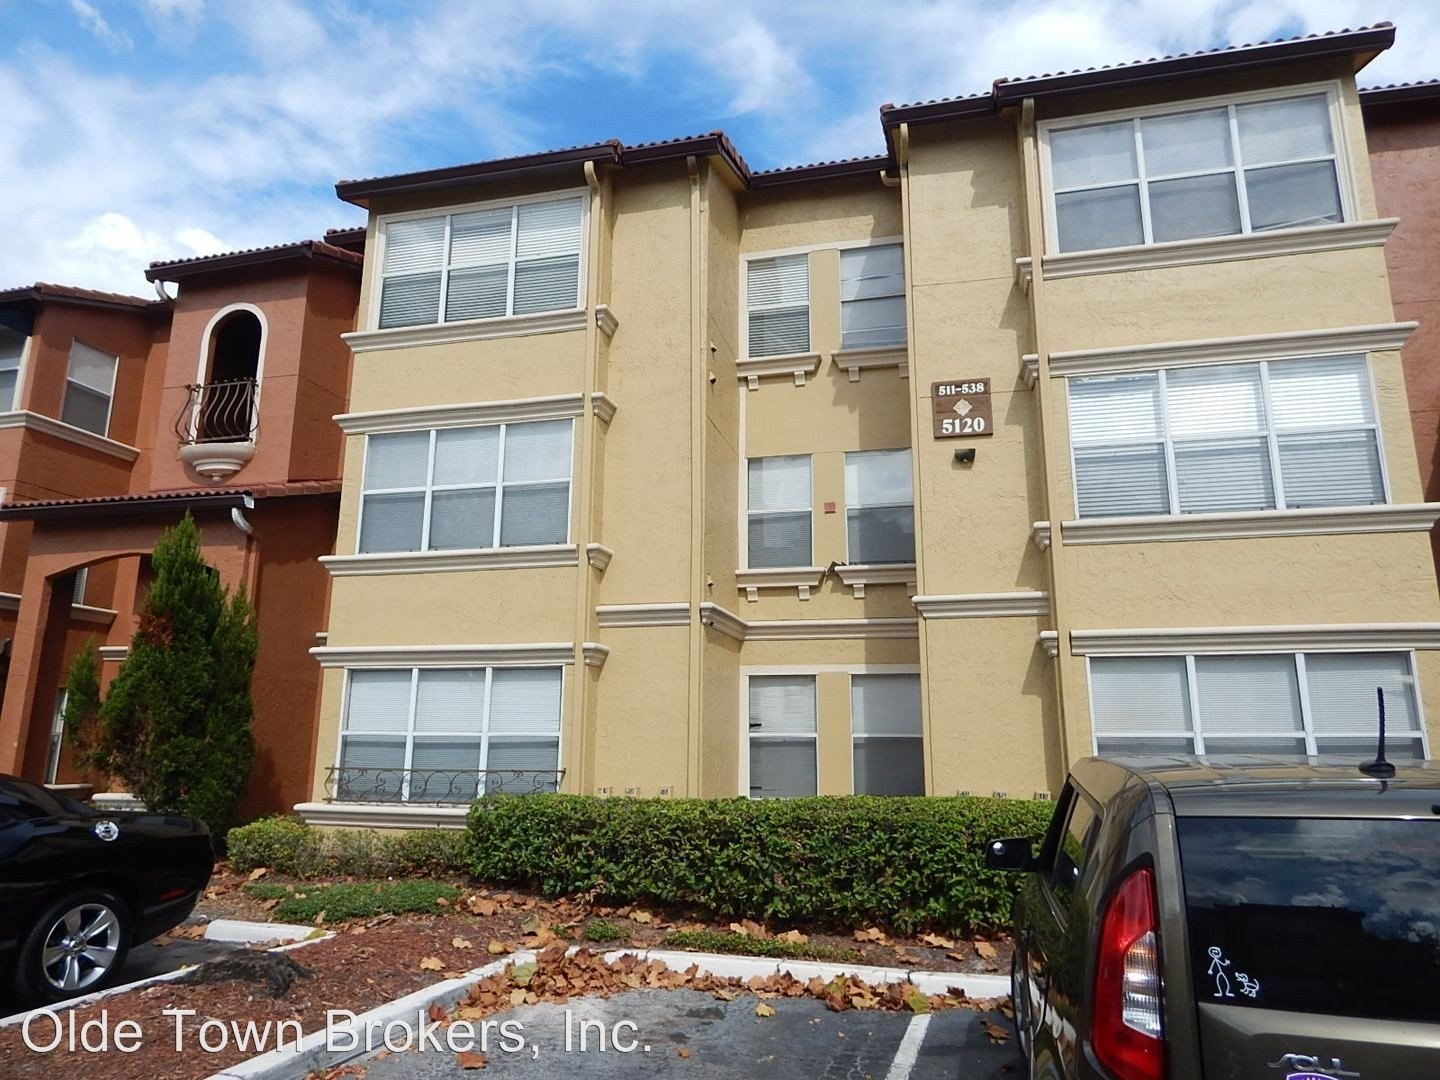 Best 5120 Conroy Rd 534 Orlando Fl 32811 1 Bedroom House For Rent For 900 Month Zumper With Pictures